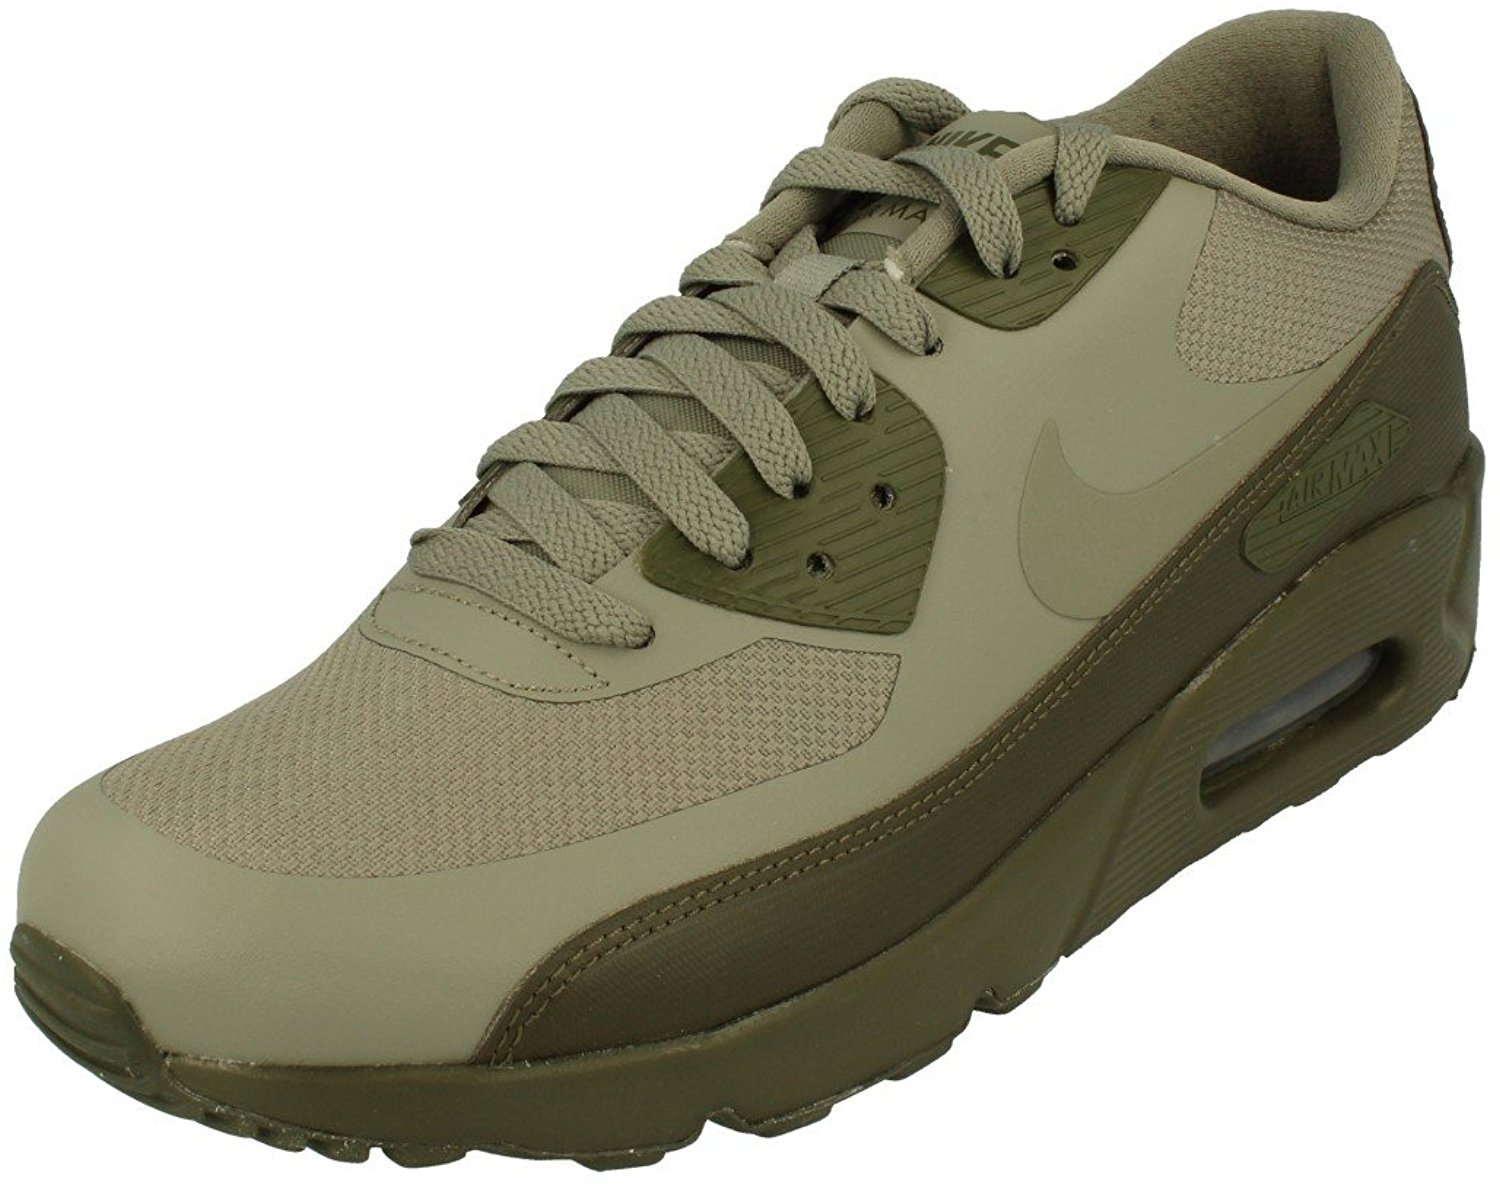 finest selection f5368 7a532 Galleon - NIKE Air Max 90 Ultra 2.0 Essential Mens Running Trainers 875695  Sneakers Shoes (UK 7 US 8 EU 41, Dark Stucco 013)